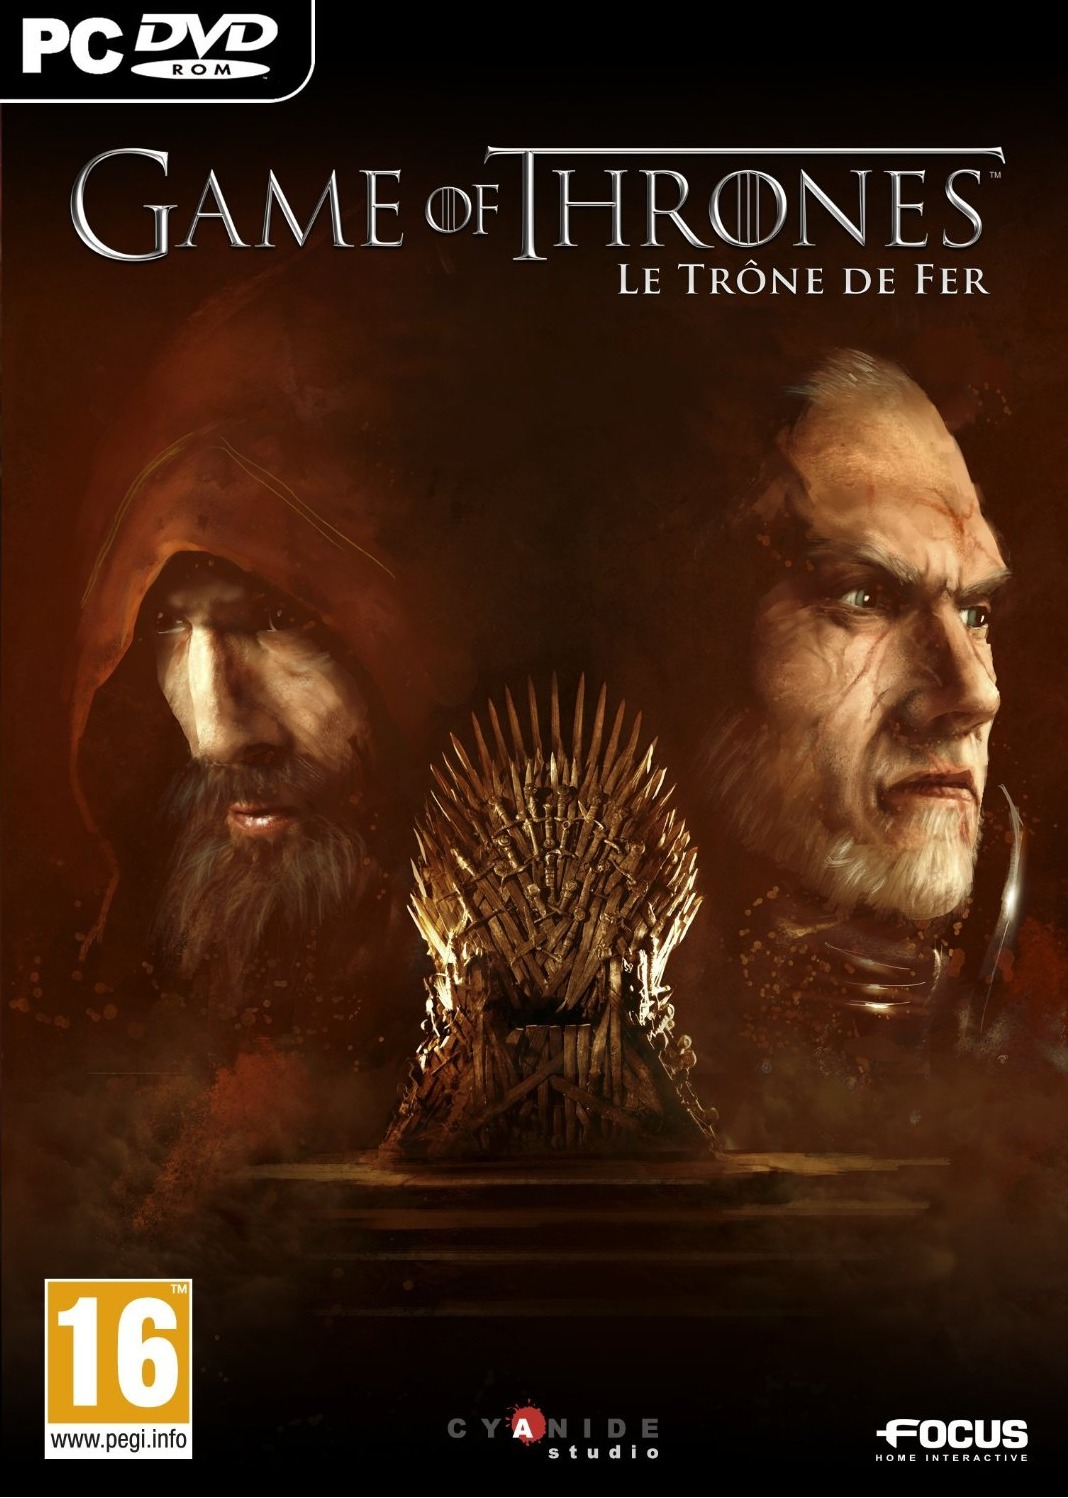 Game of Thrones : Le Trône de Fer + crack  [PC] | ISO  [MULTI] (Exclue)